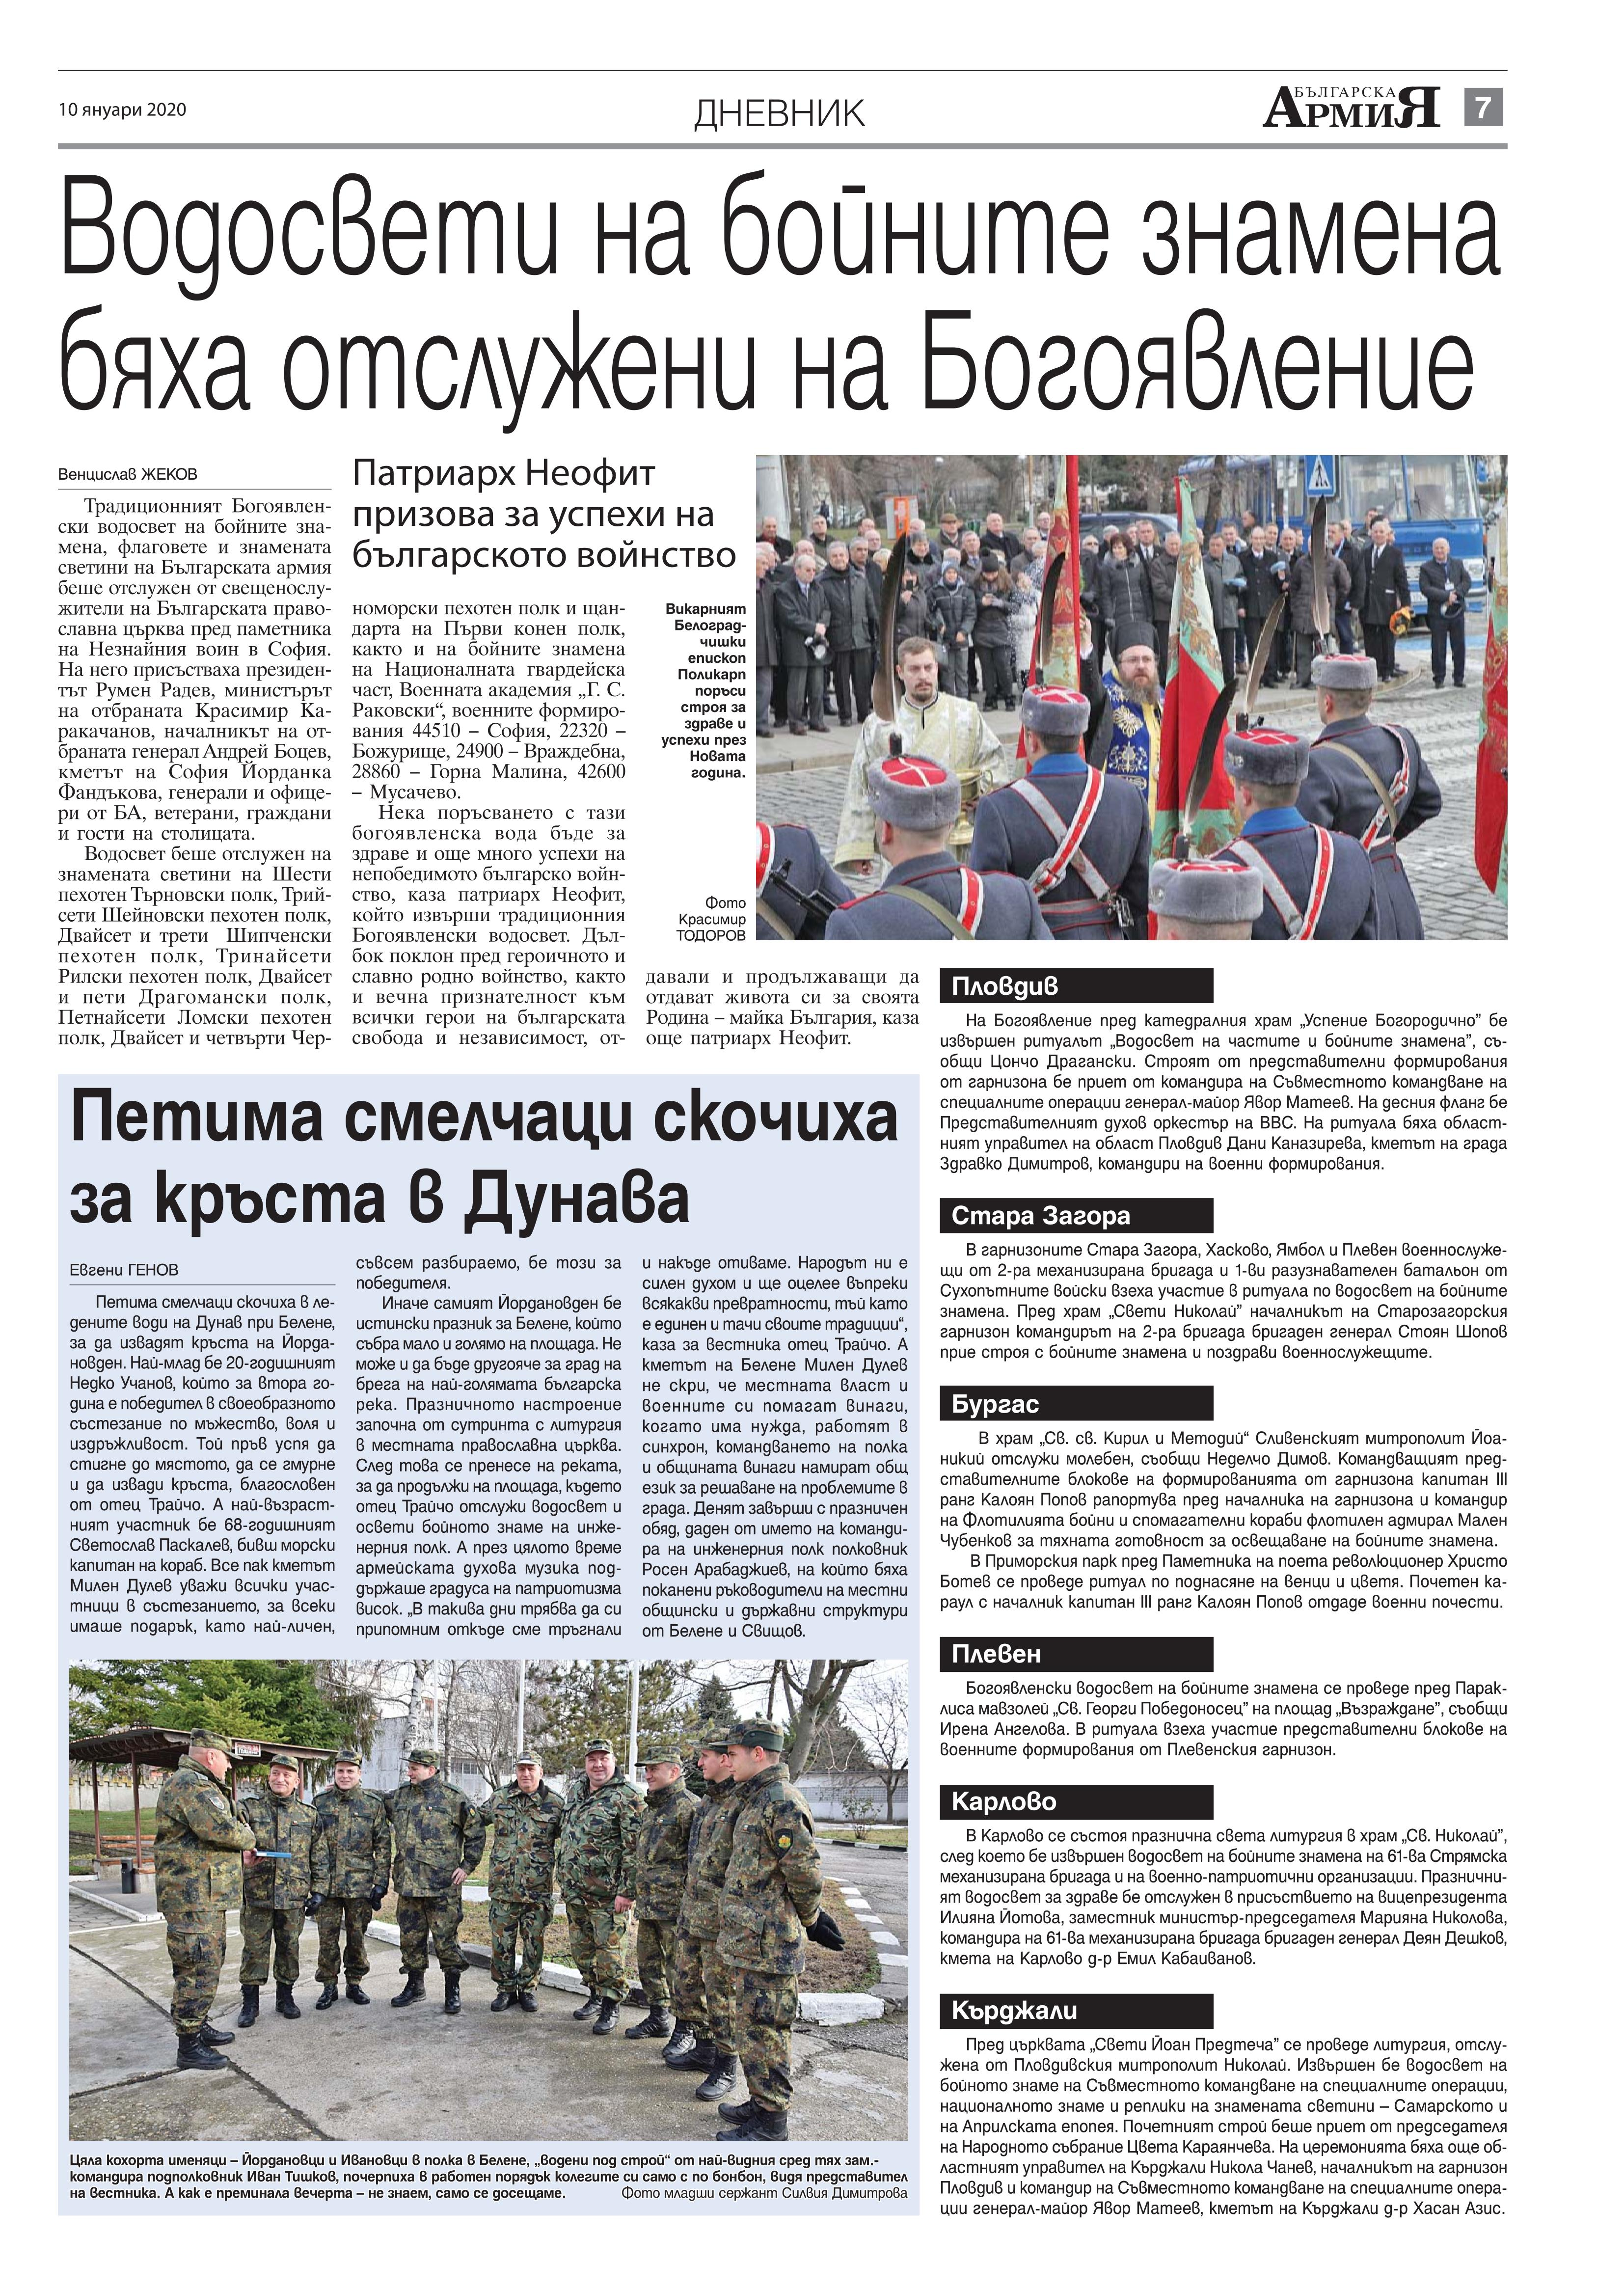 https://armymedia.bg/wp-content/uploads/2015/06/07.page1_-119.jpg